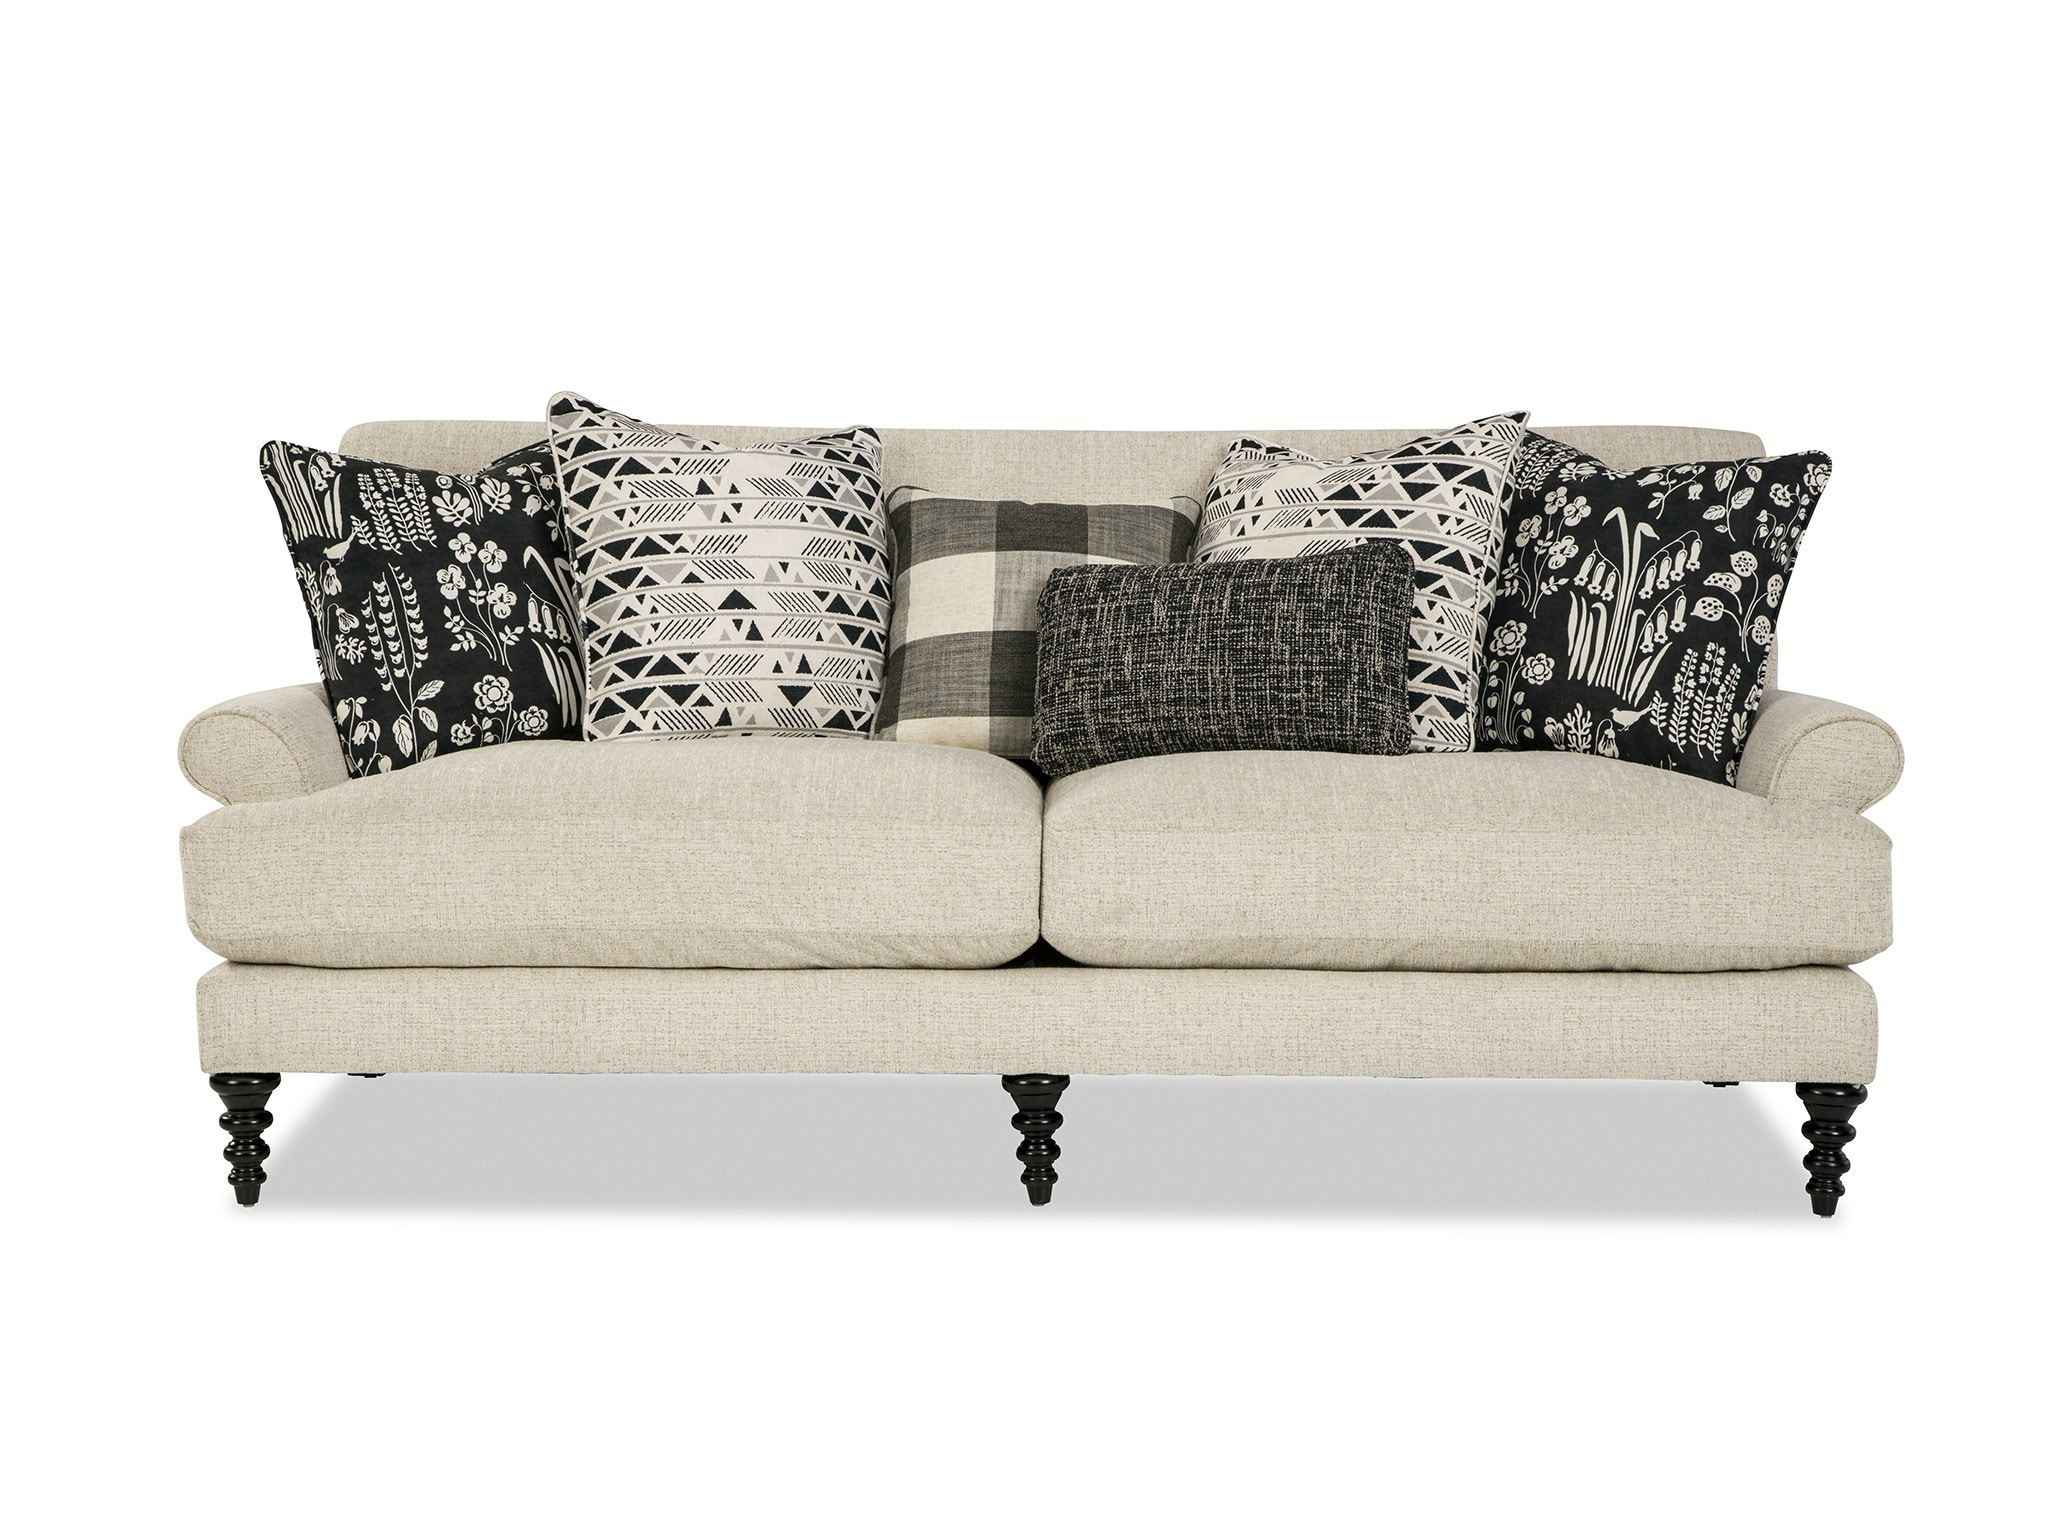 craftmaster living room furniture with corner fireplace design ideas paula deen by sofa p782950bd good s